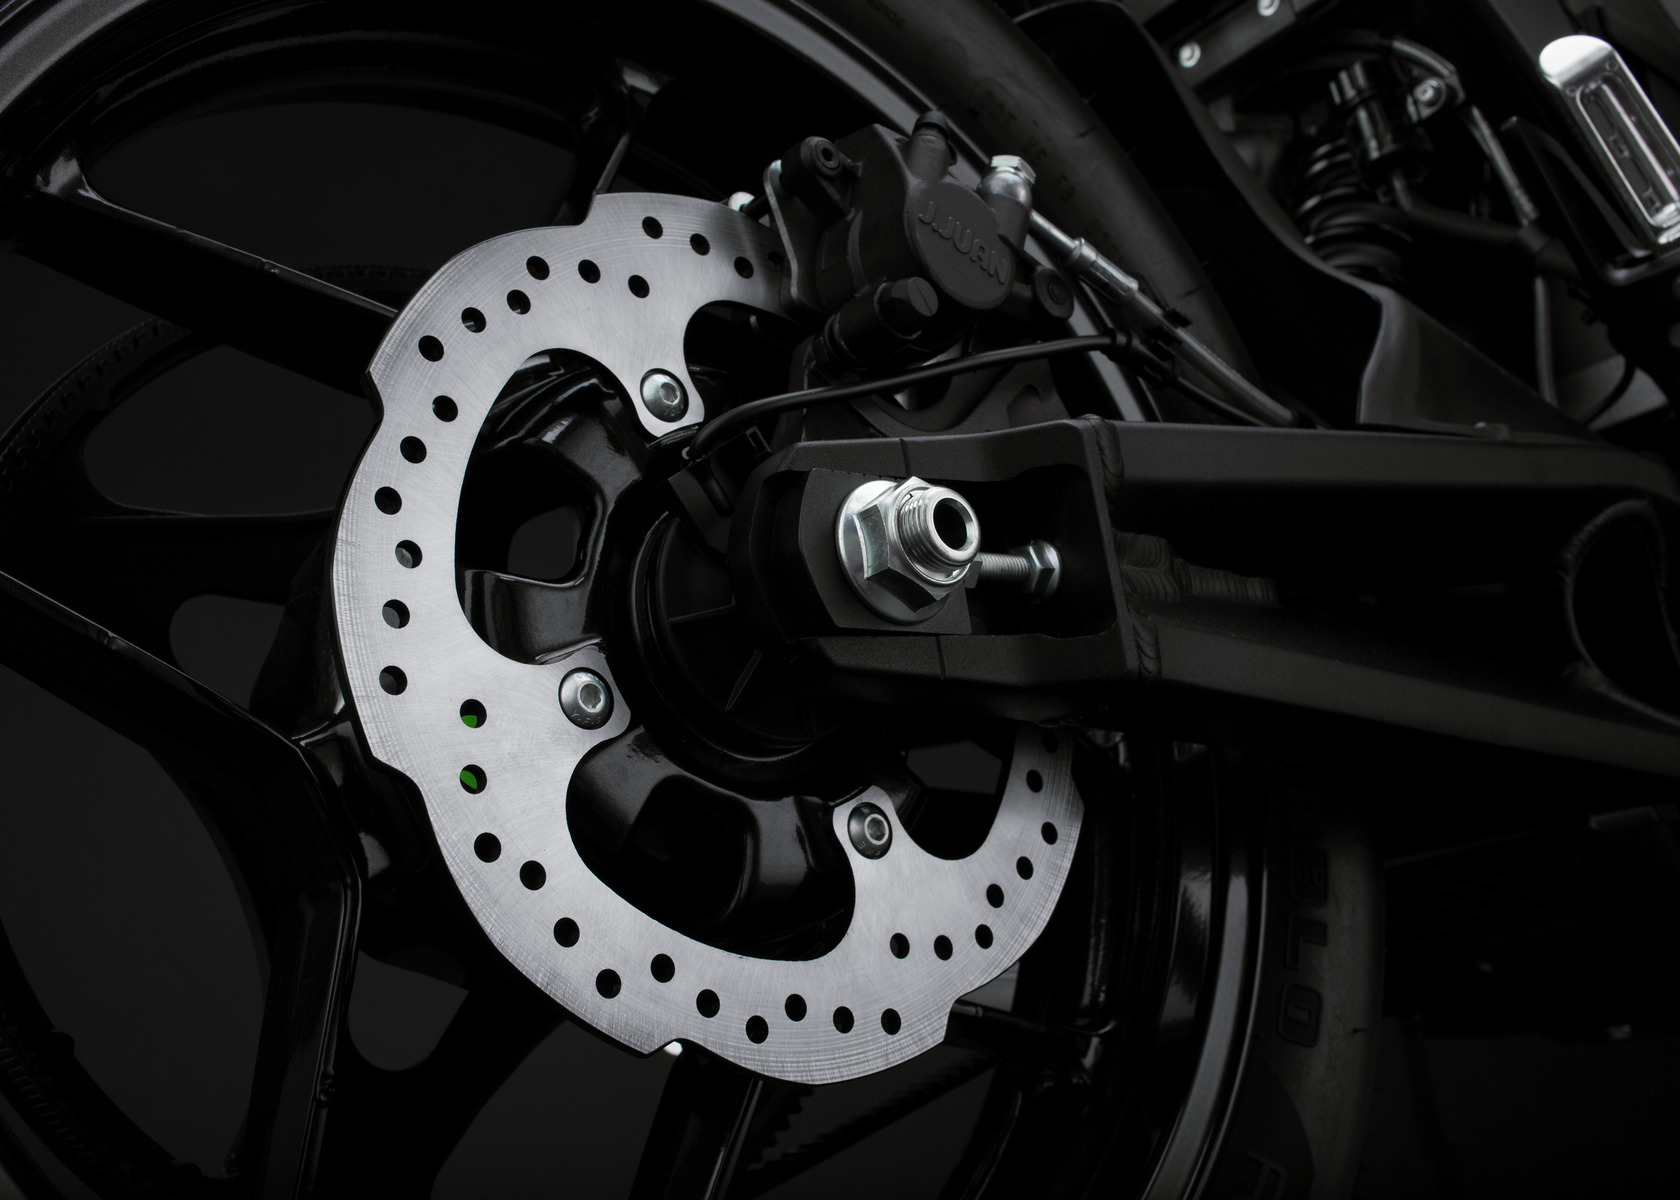 2016 Zero FXS Electric Motorcycle: Rear Brake